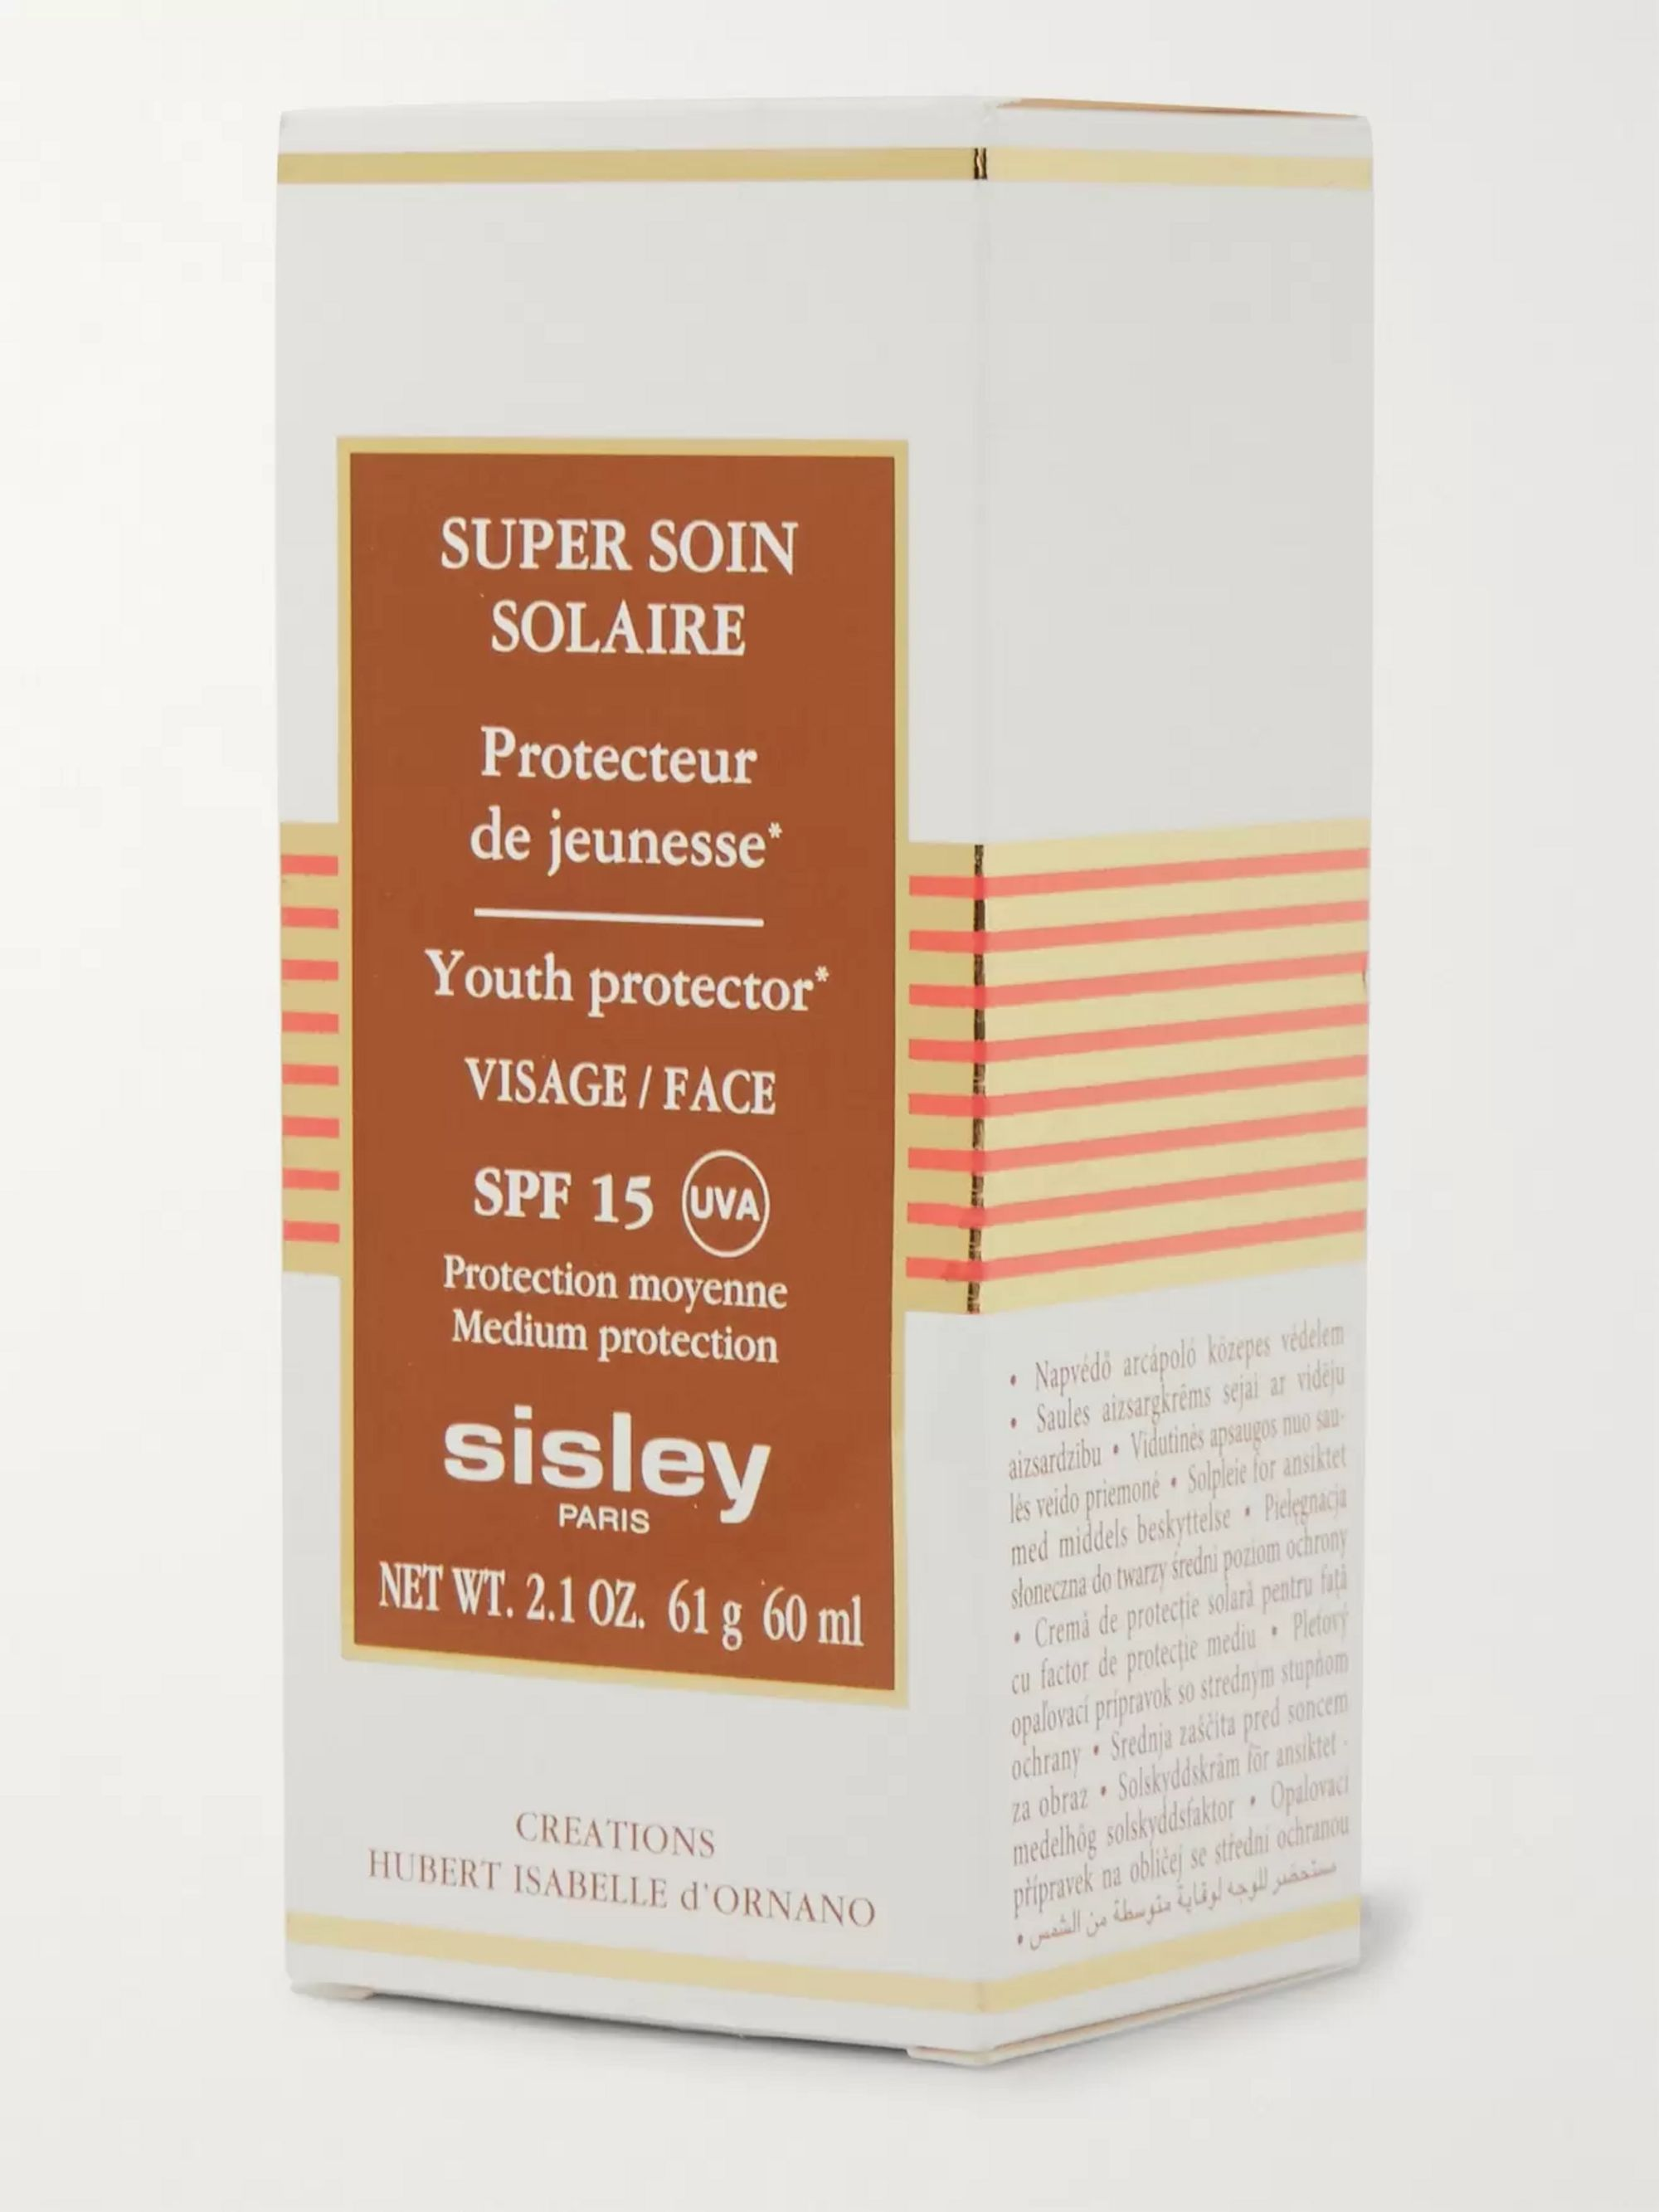 Sisley - Paris Super Soin Solaire Facial Youth Protector SPF15, 60ml